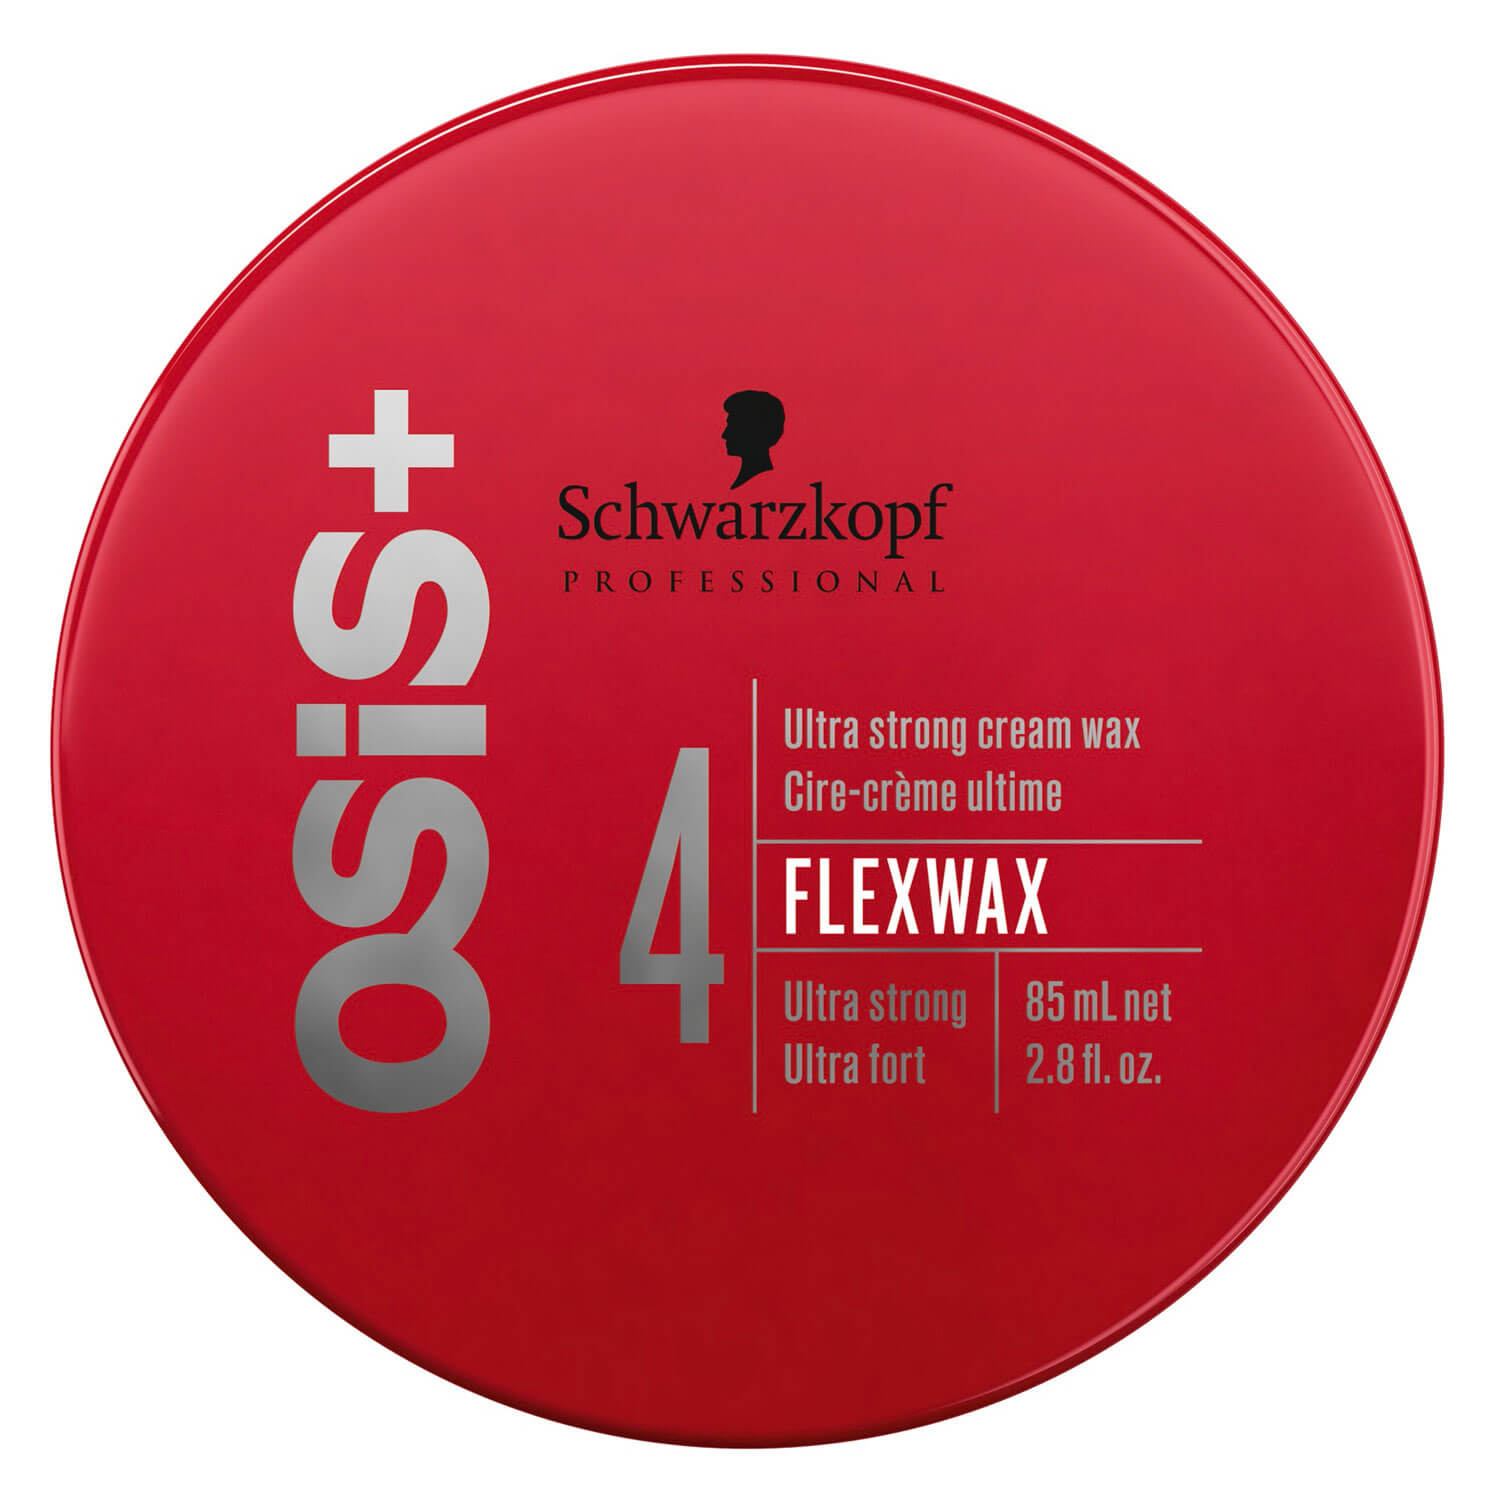 Osis - Flexwax - 85ml